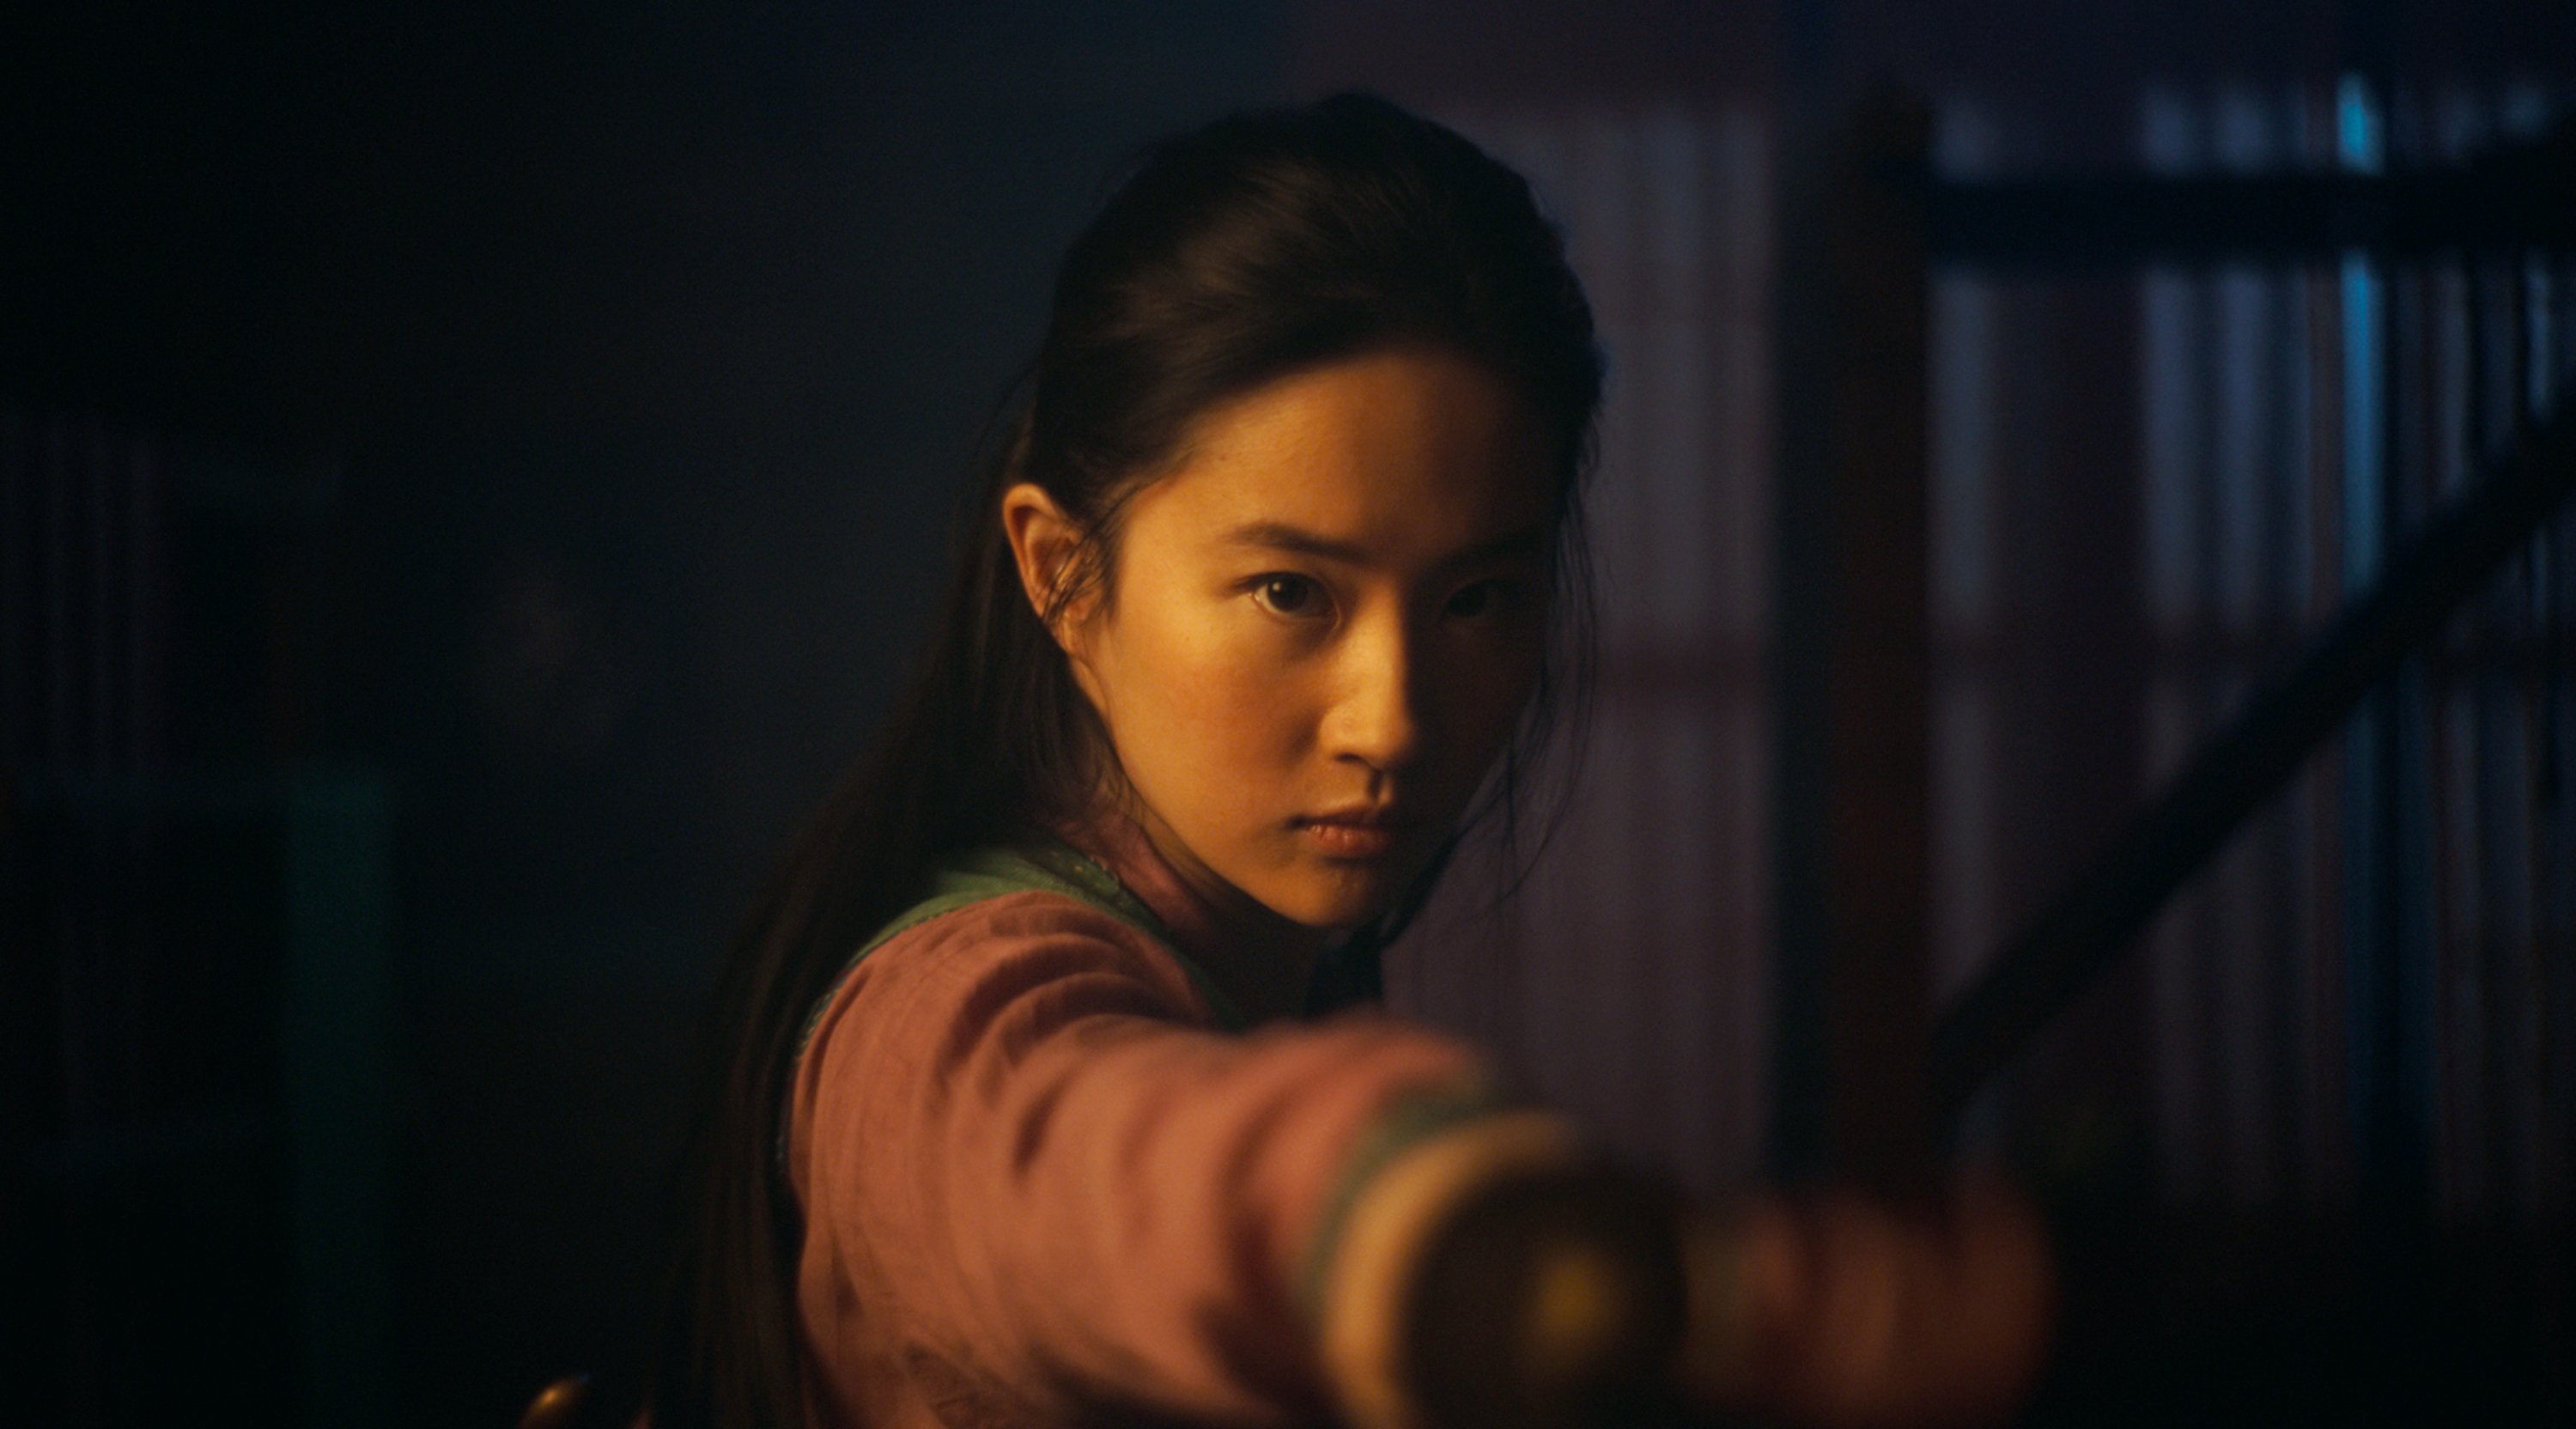 The Live Action Mulan Streaming On Disney Improves On The Animated Original The Boston Globe